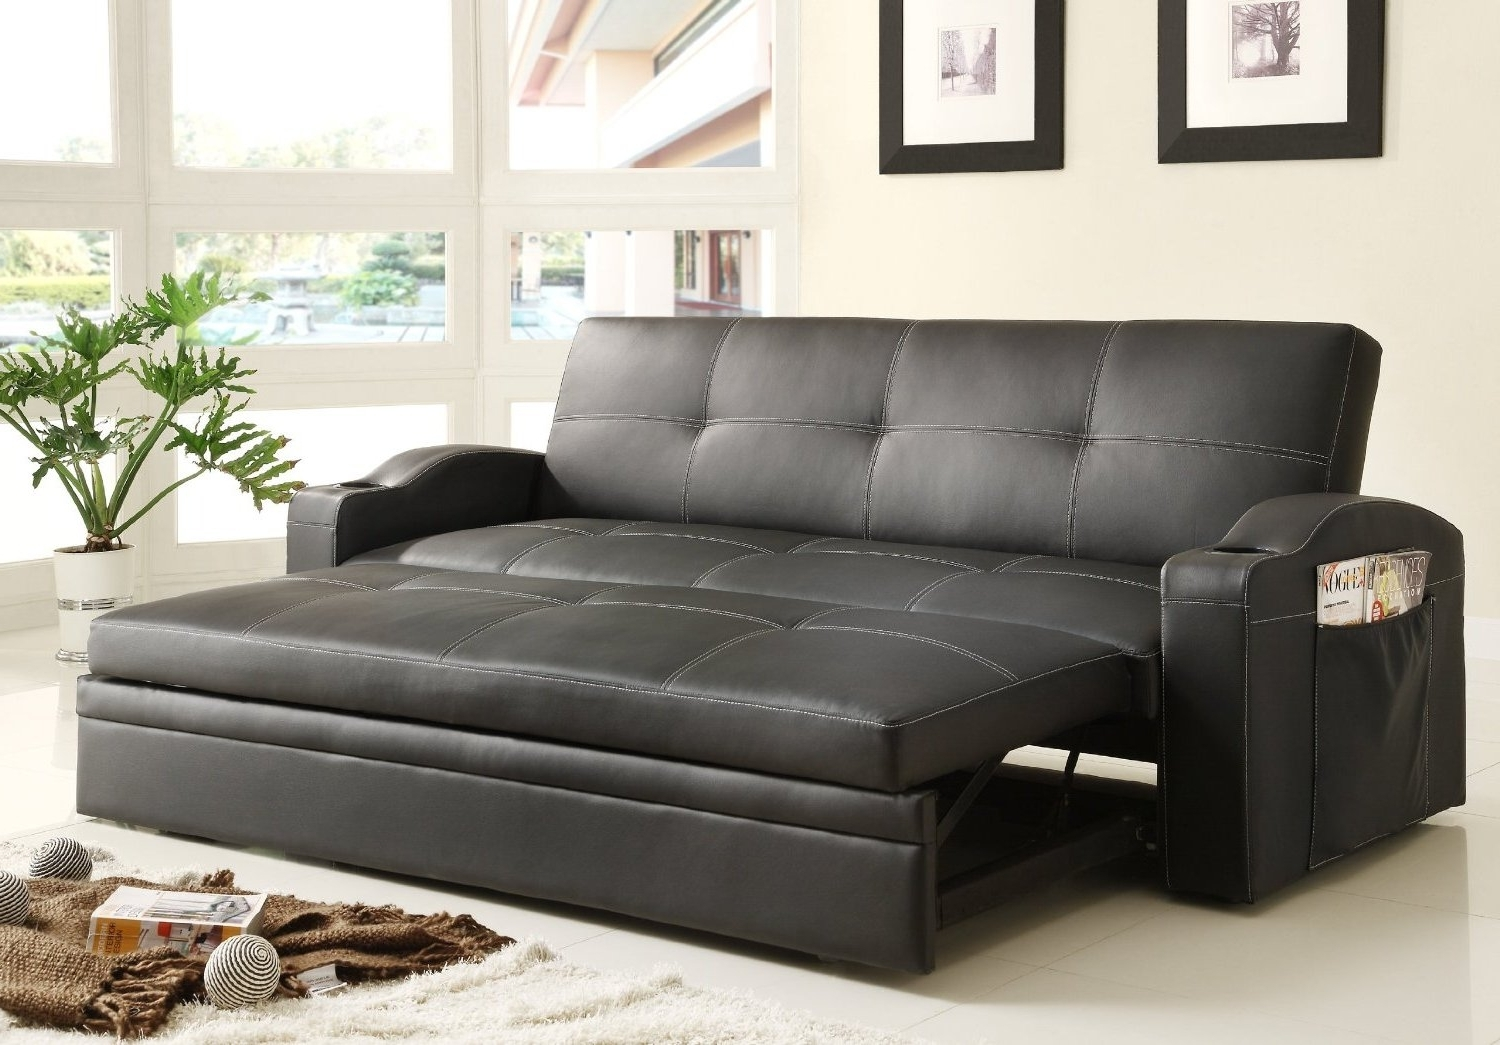 Most Current Adjustable Queen Size Sofa Bed Black Color Upholstered In Black Bi Pertaining To Queen Size Sofas (View 6 of 20)